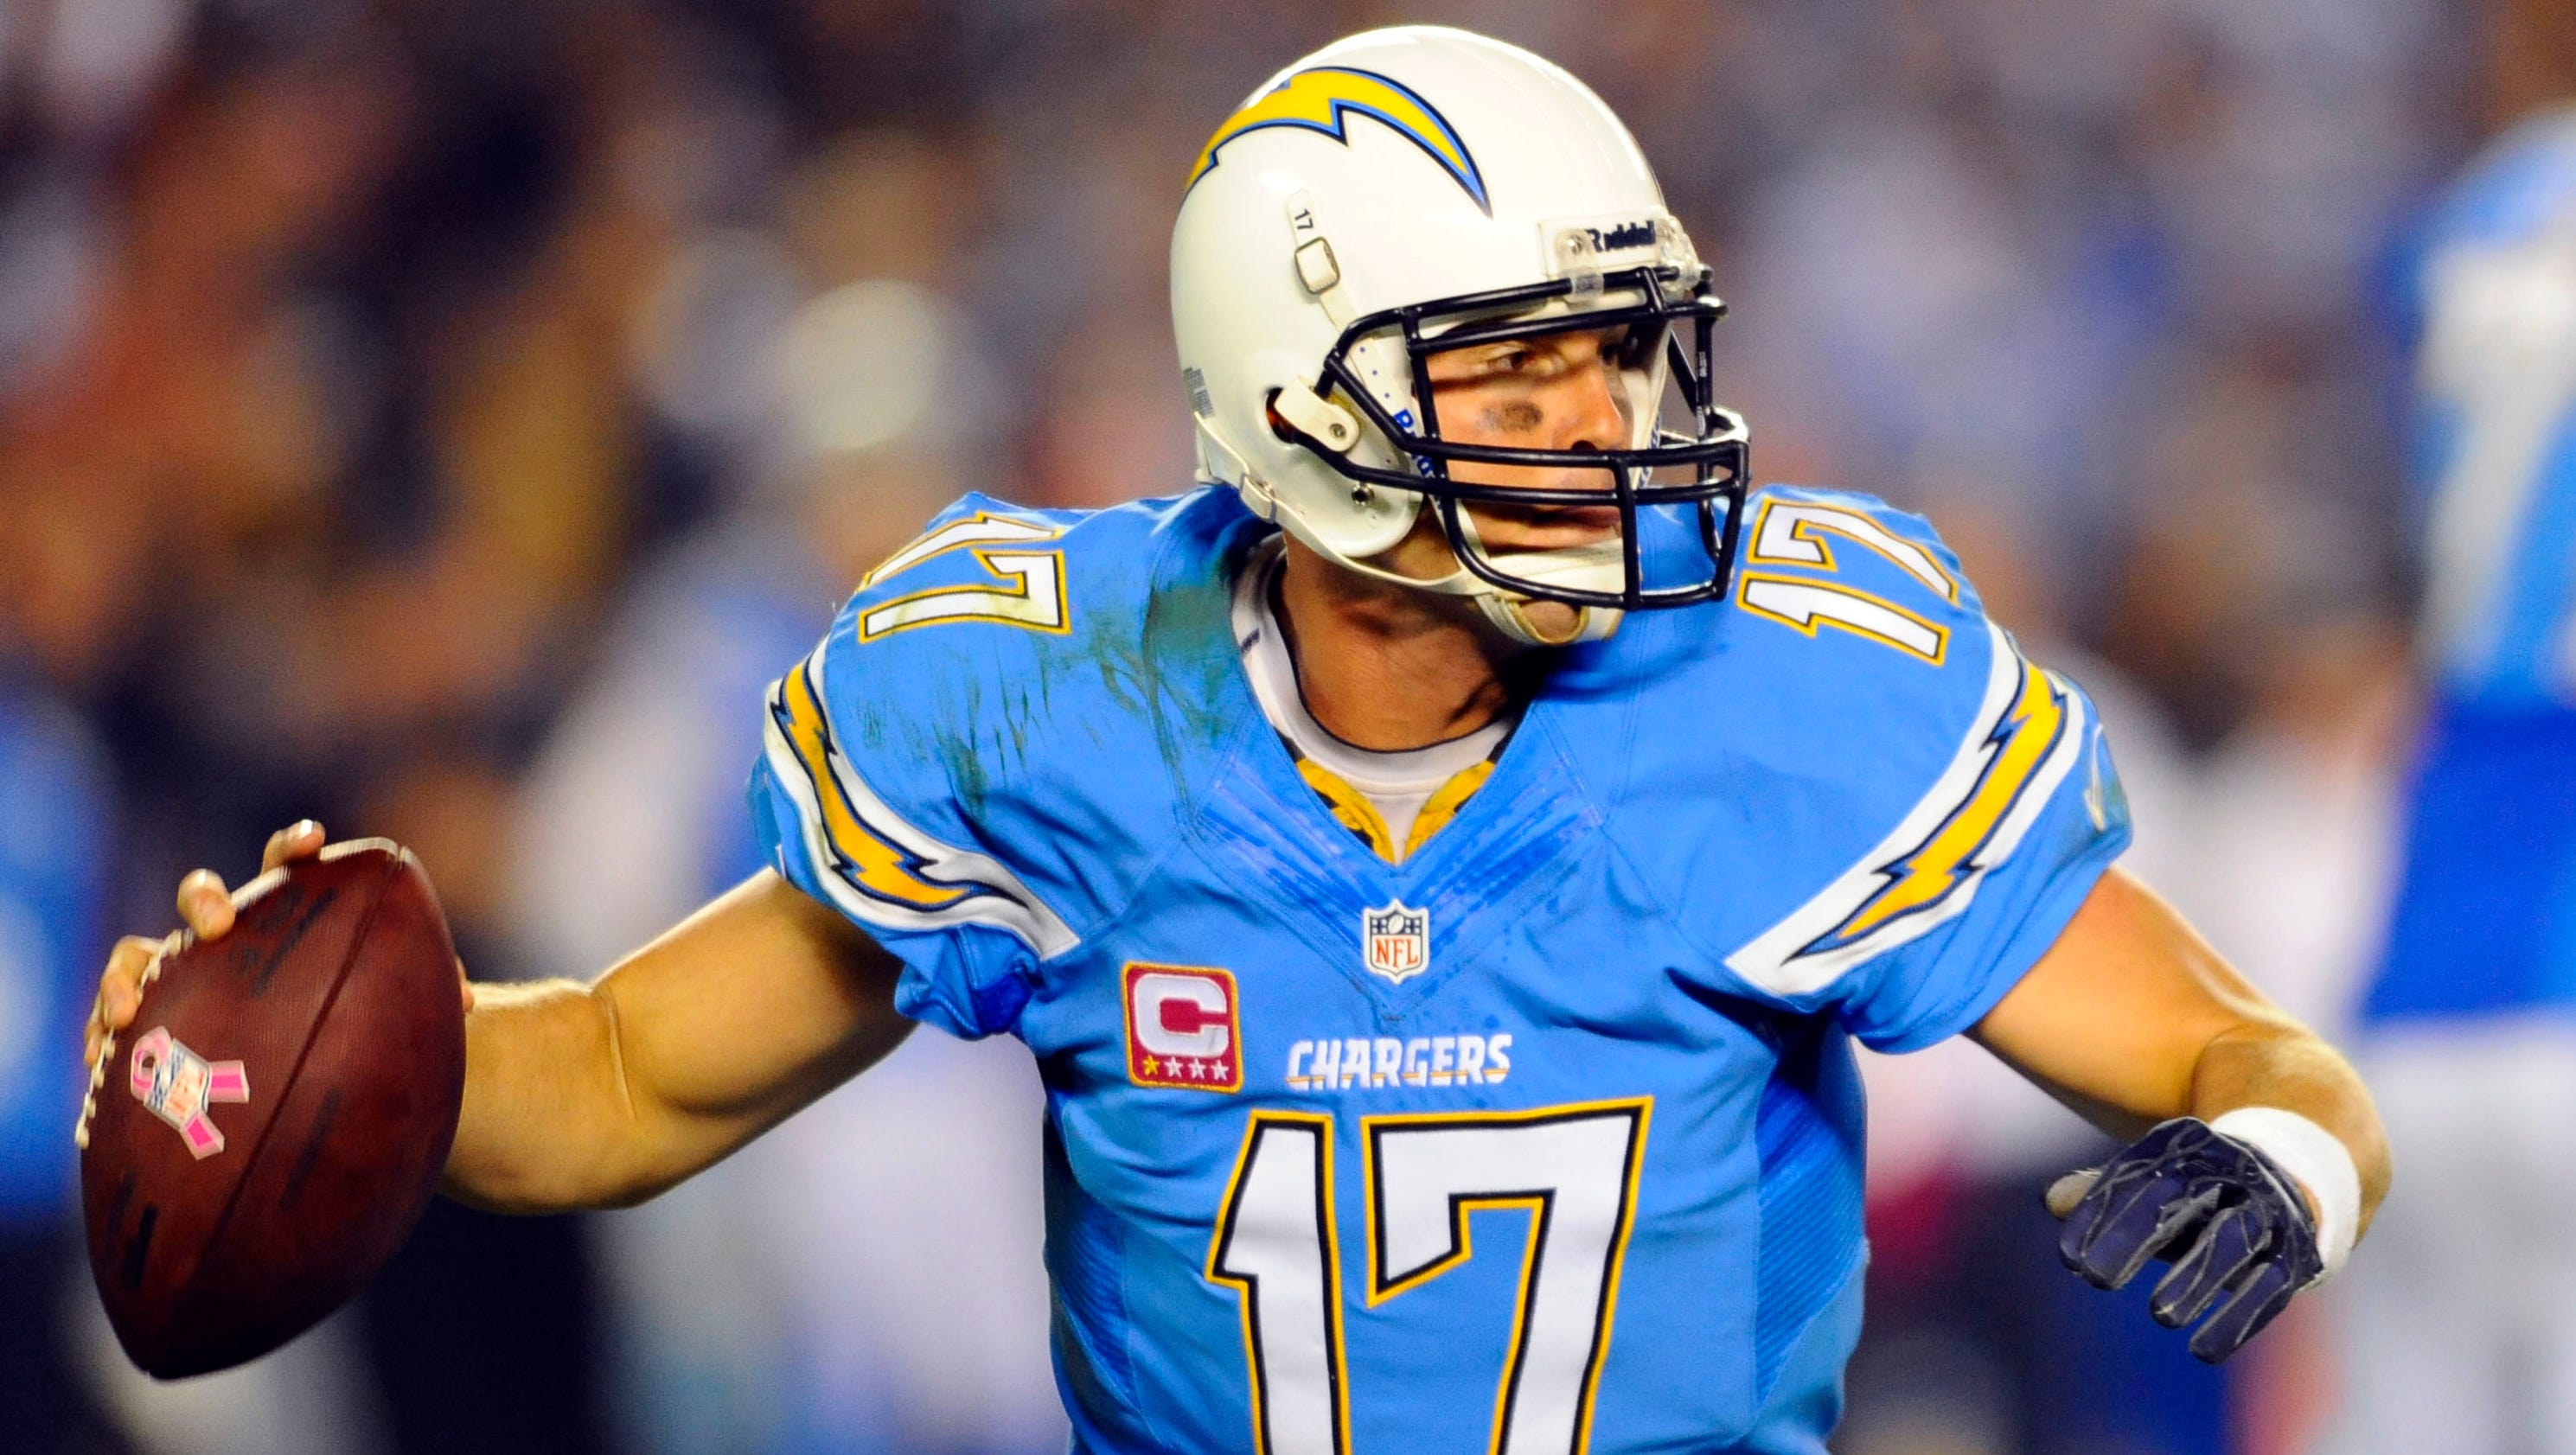 Chargers Logo Looks Better In Powder Blue And Gold